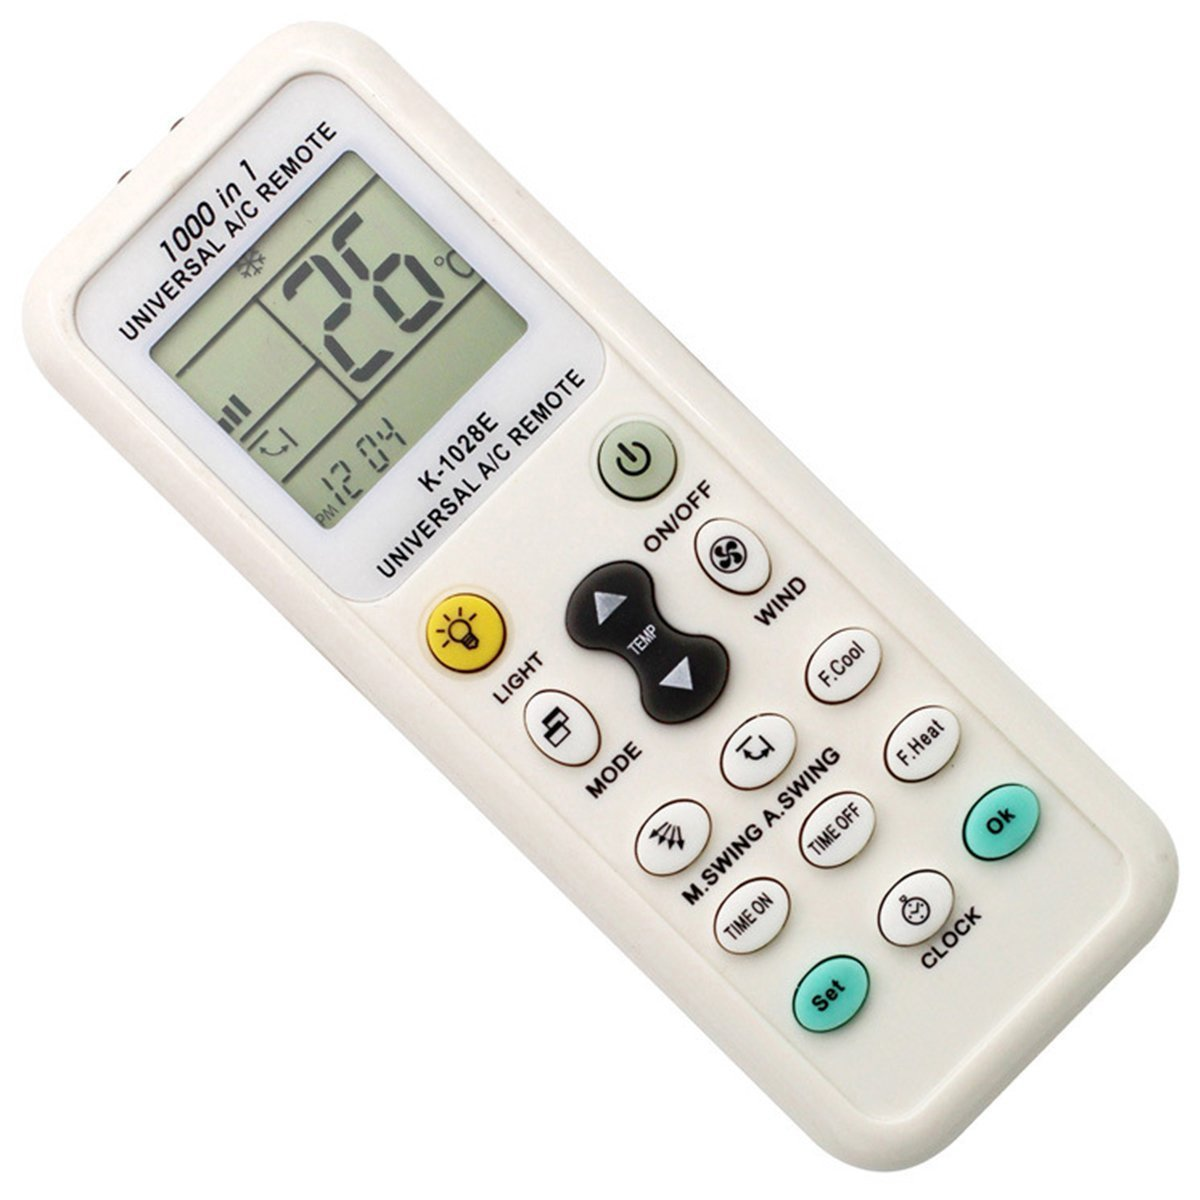 Coyaho Universal Air Conditioner Remote Control for Daikin, Hitachi, Mitsubishi, Carrier, Panasonic, LG, Sharp, Haier, Gree, Midea, Whirlpool, Bosch, Olympus, Toshiba, Samsung and 1000 more brands